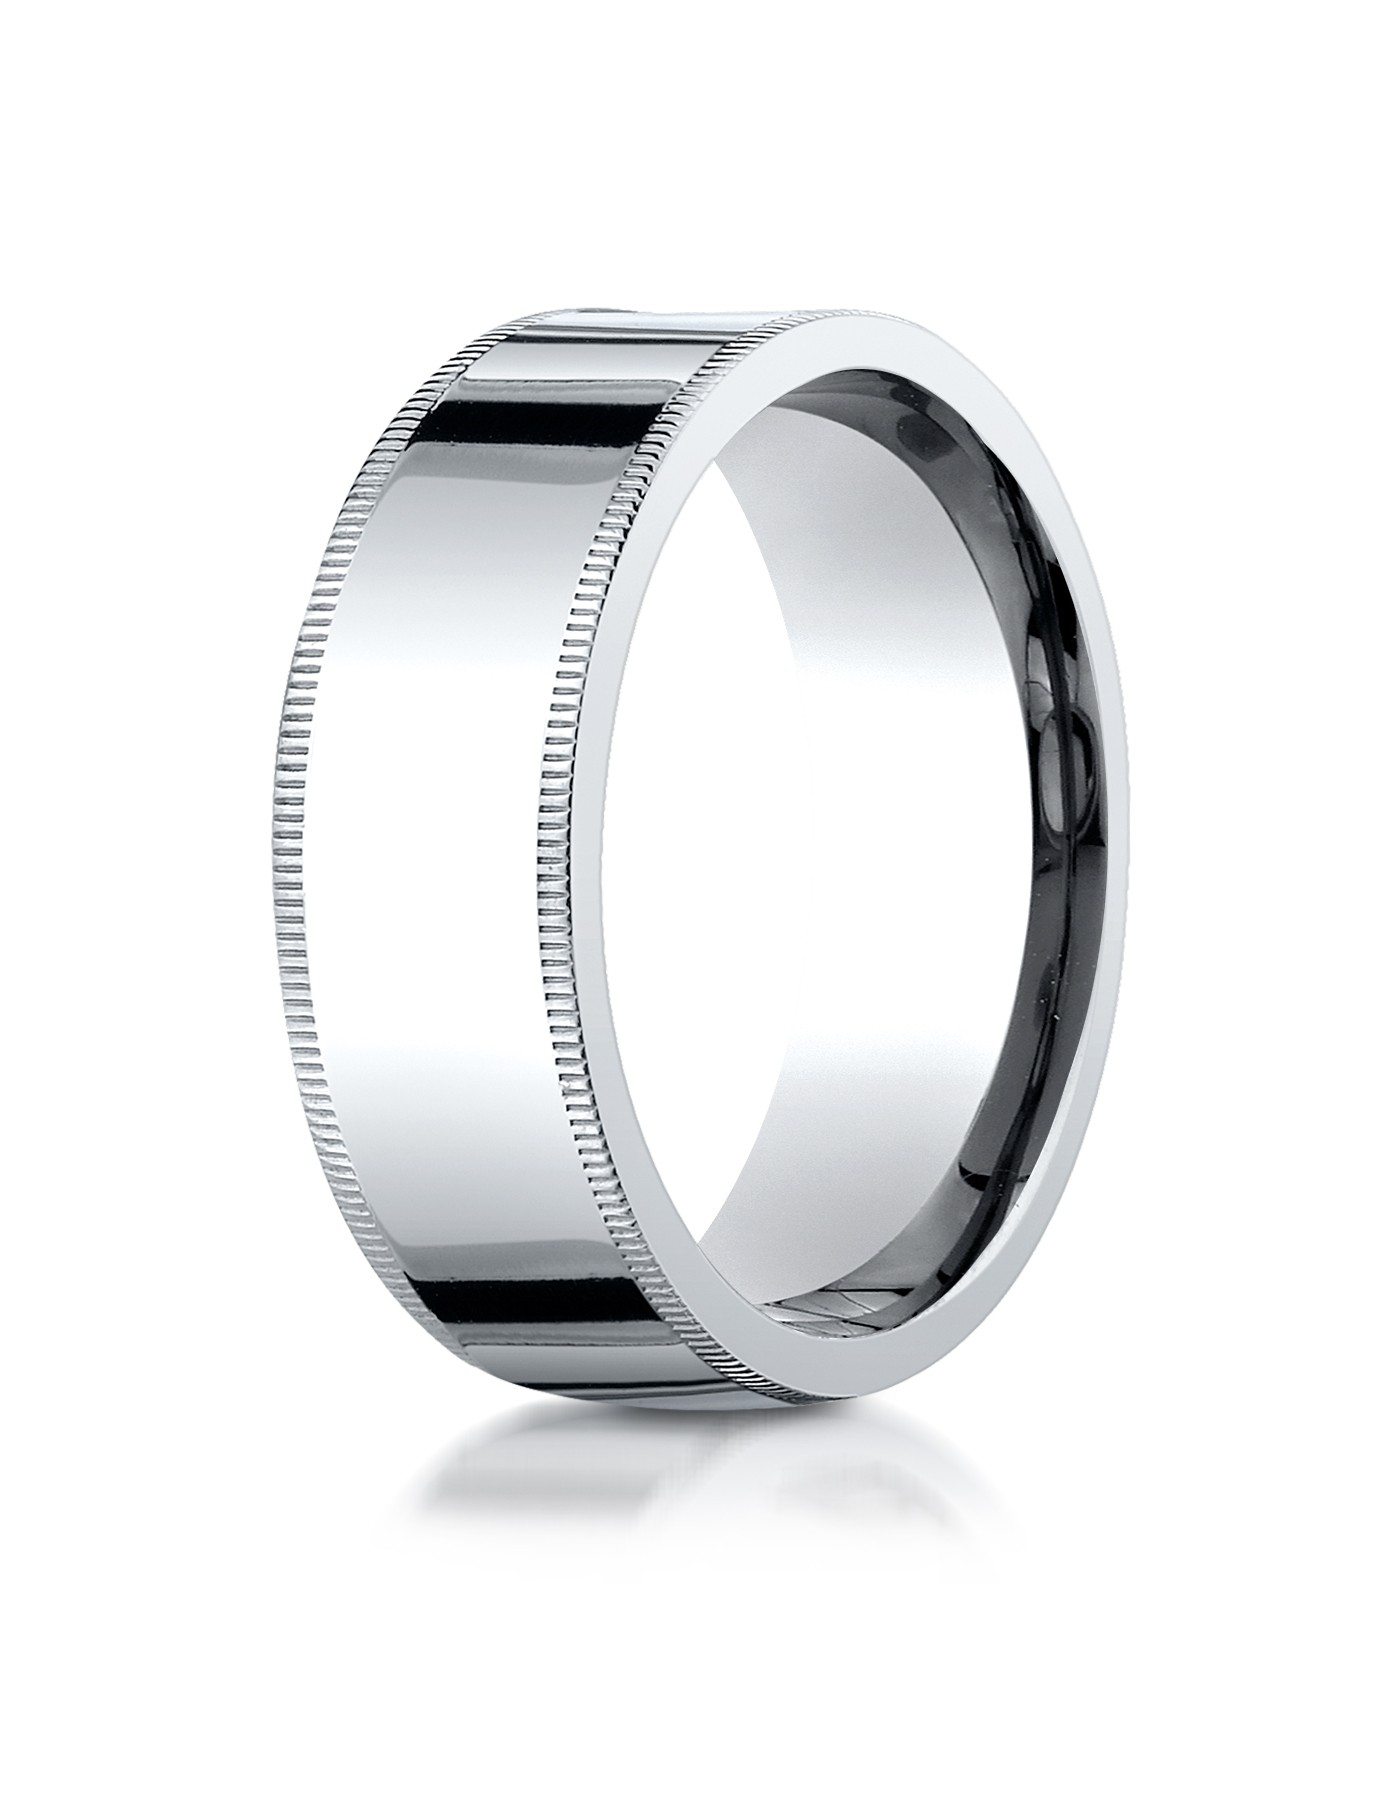 14k White Gold 8mm Flat Comfort-fit Ring With Milgrain